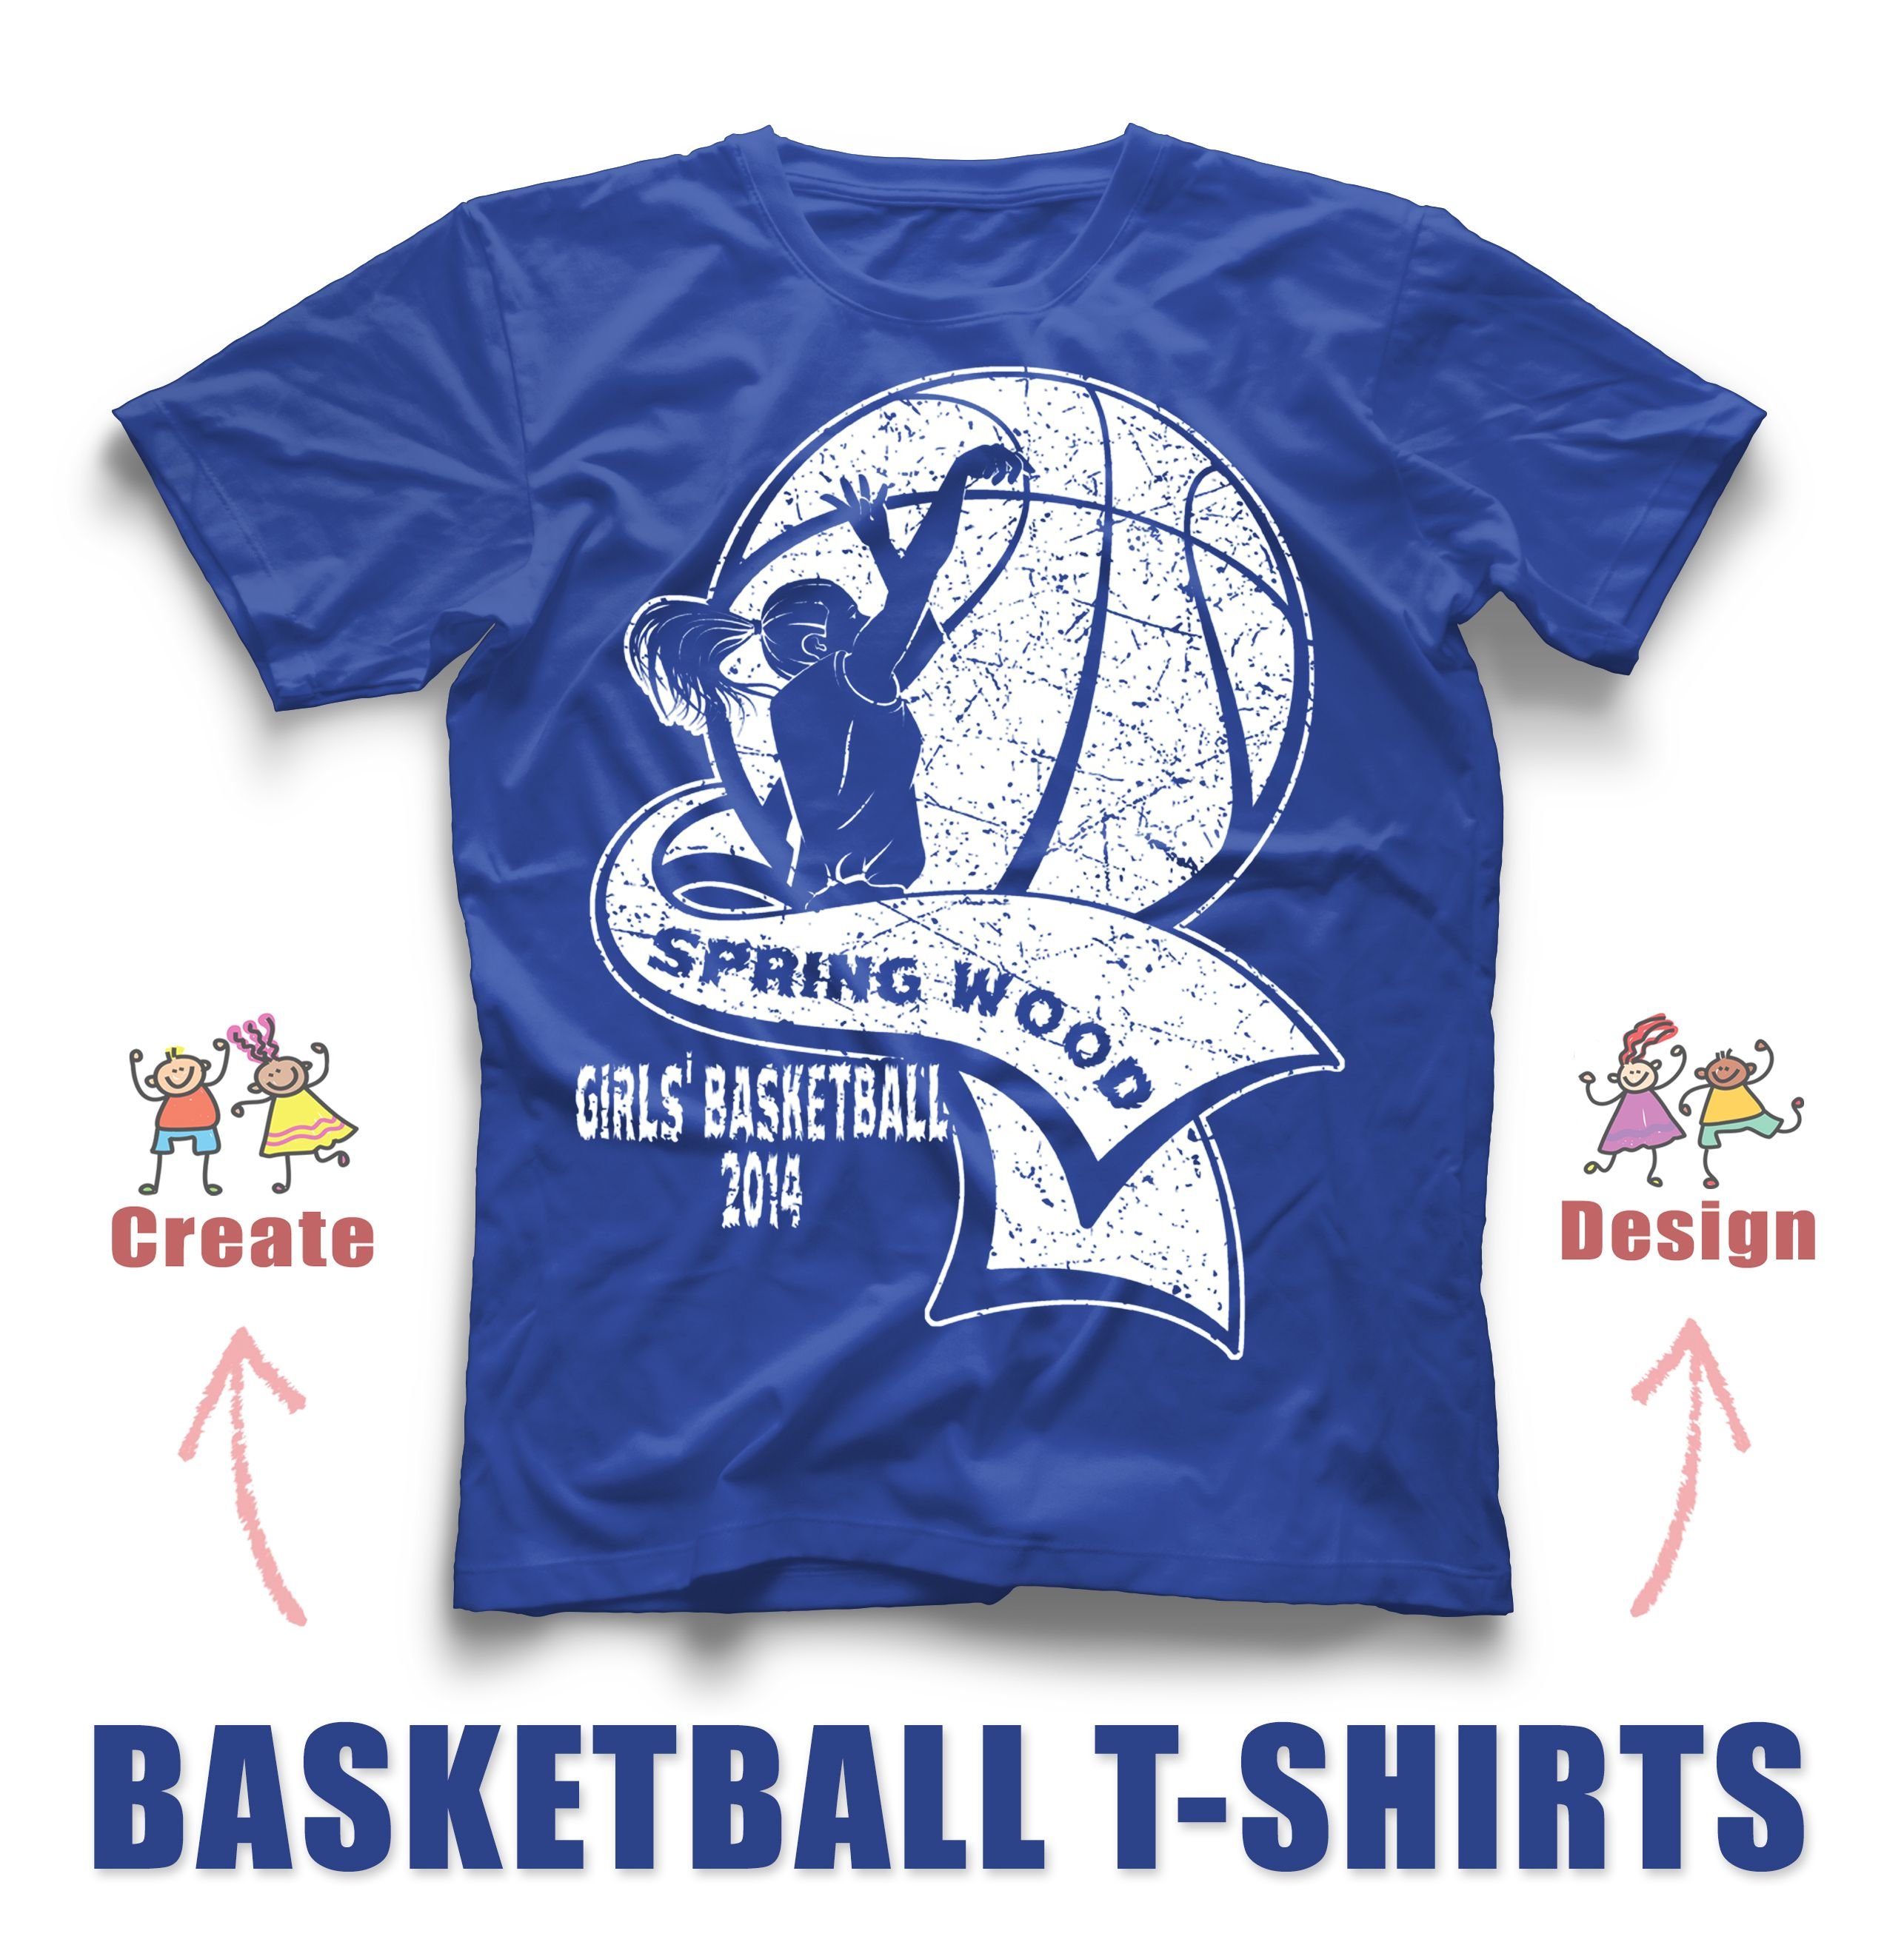 Design t shirt upload picture - Girl S Basketball Custom T Shirt Design Awesome Design You Can Upload Your Design